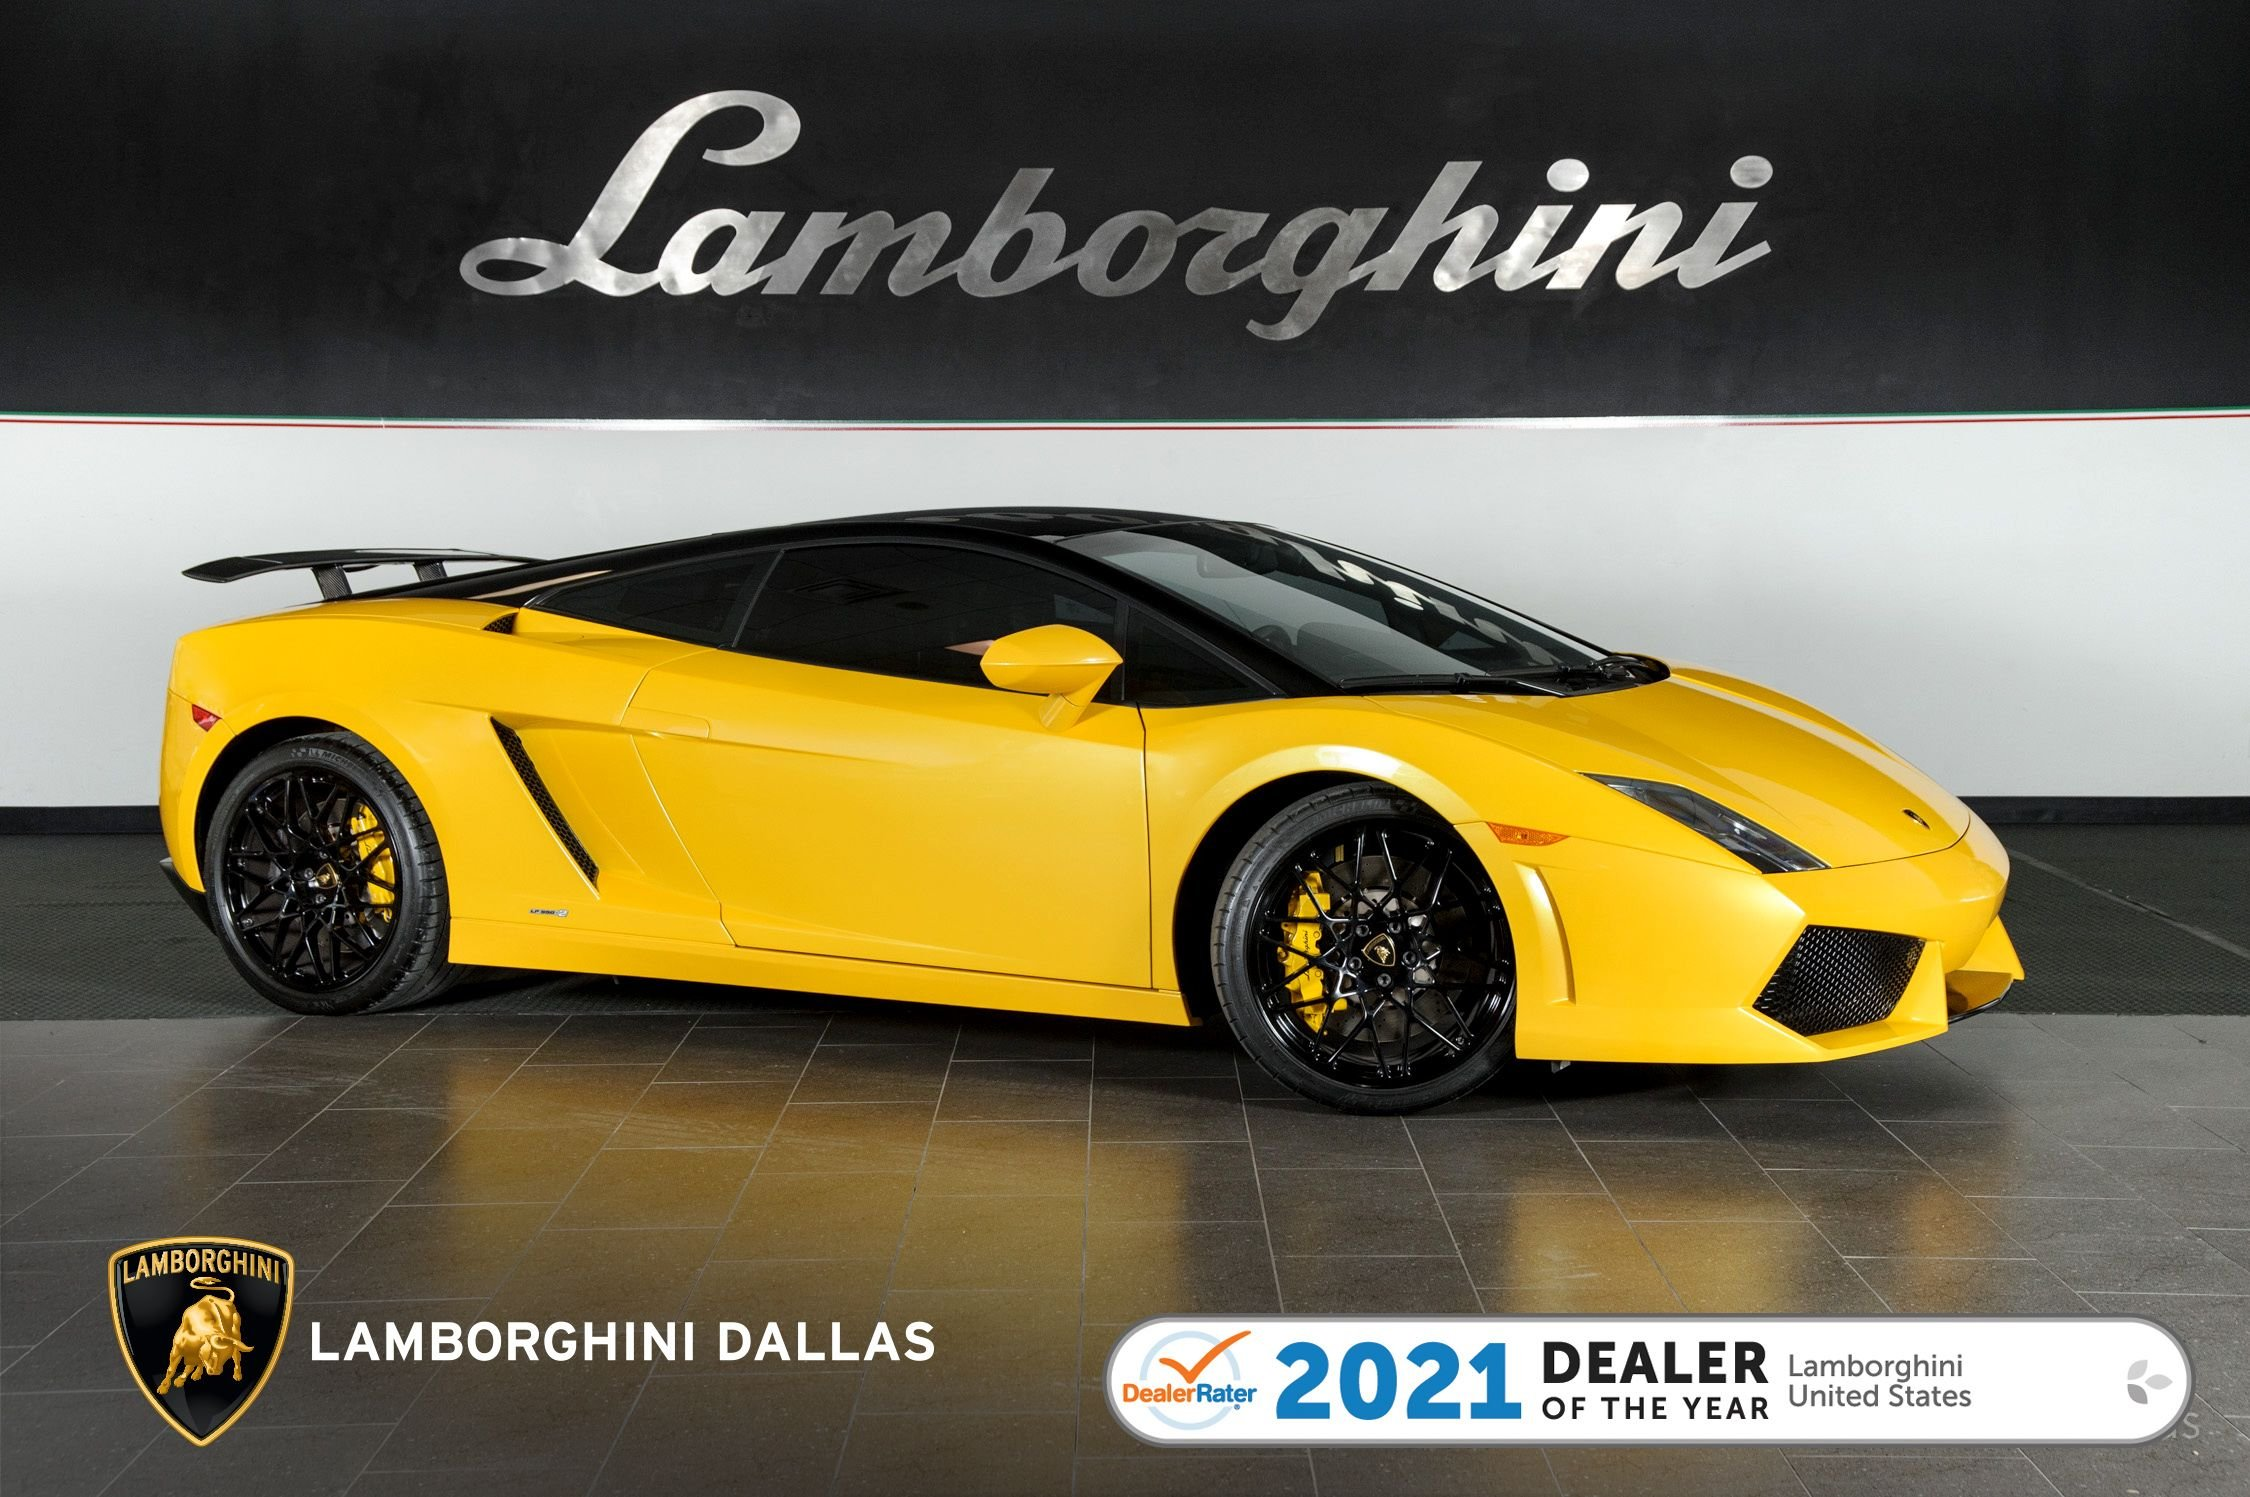 used 2011 Lamborghini Gallardo LP550-2 Bicolore car, priced at $129,999